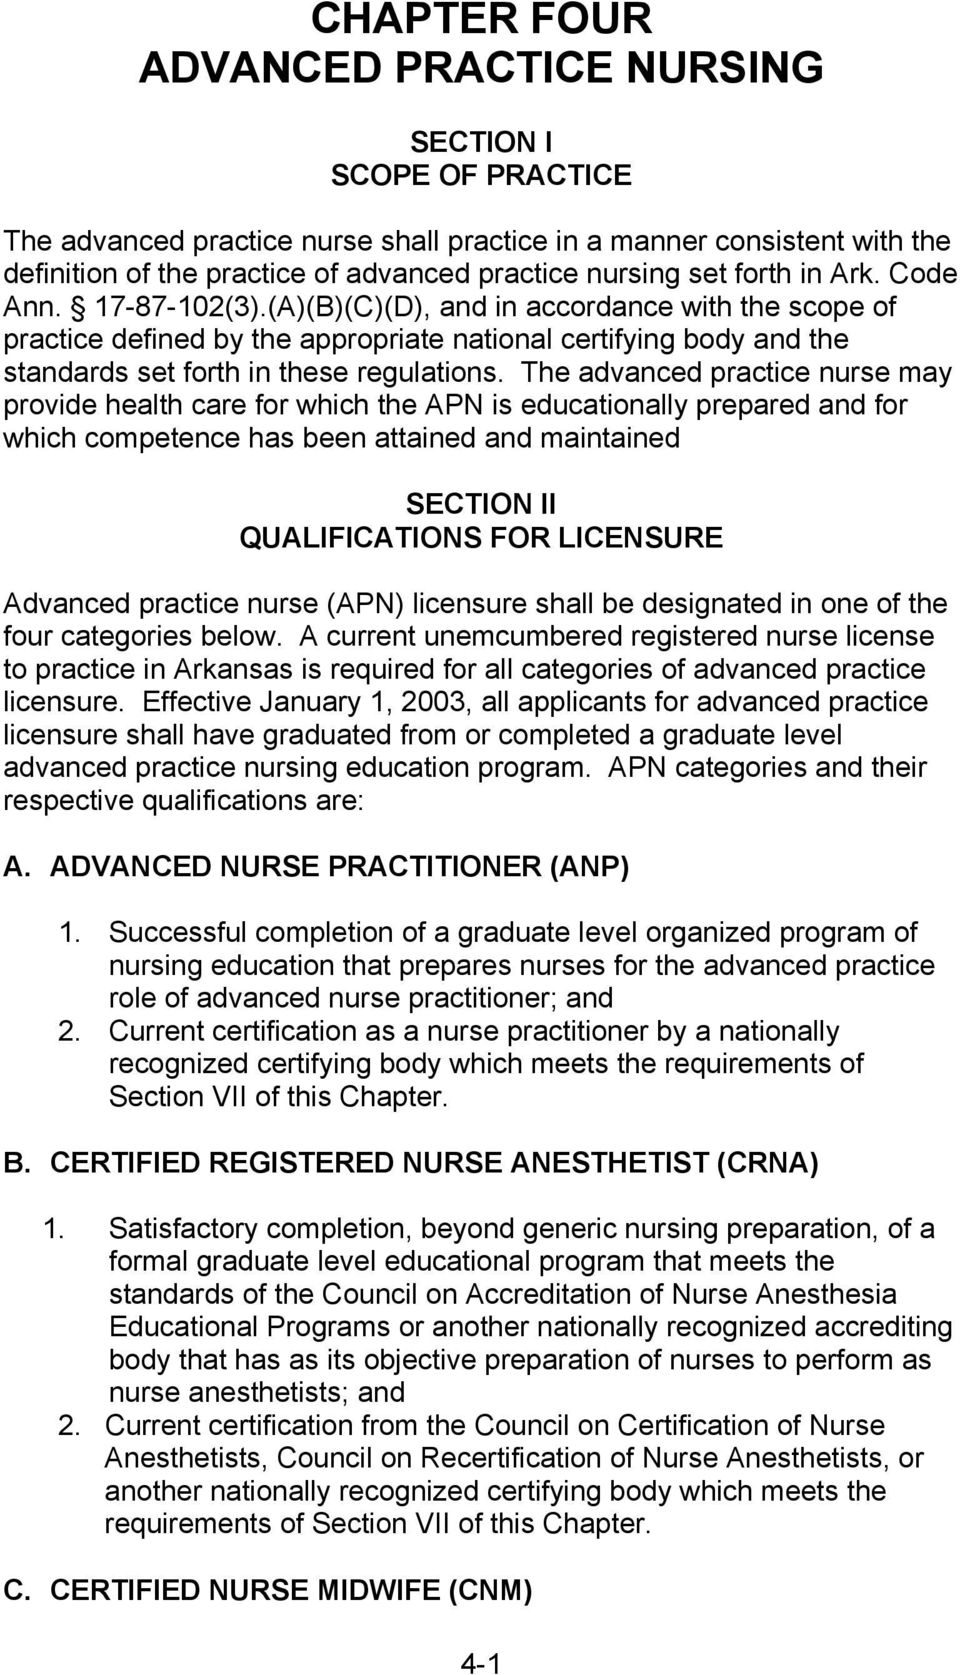 (A)(B)(C)(D), and in accordance with the scope of practice defined by the appropriate national certifying body and the standards set forth in these regulations.